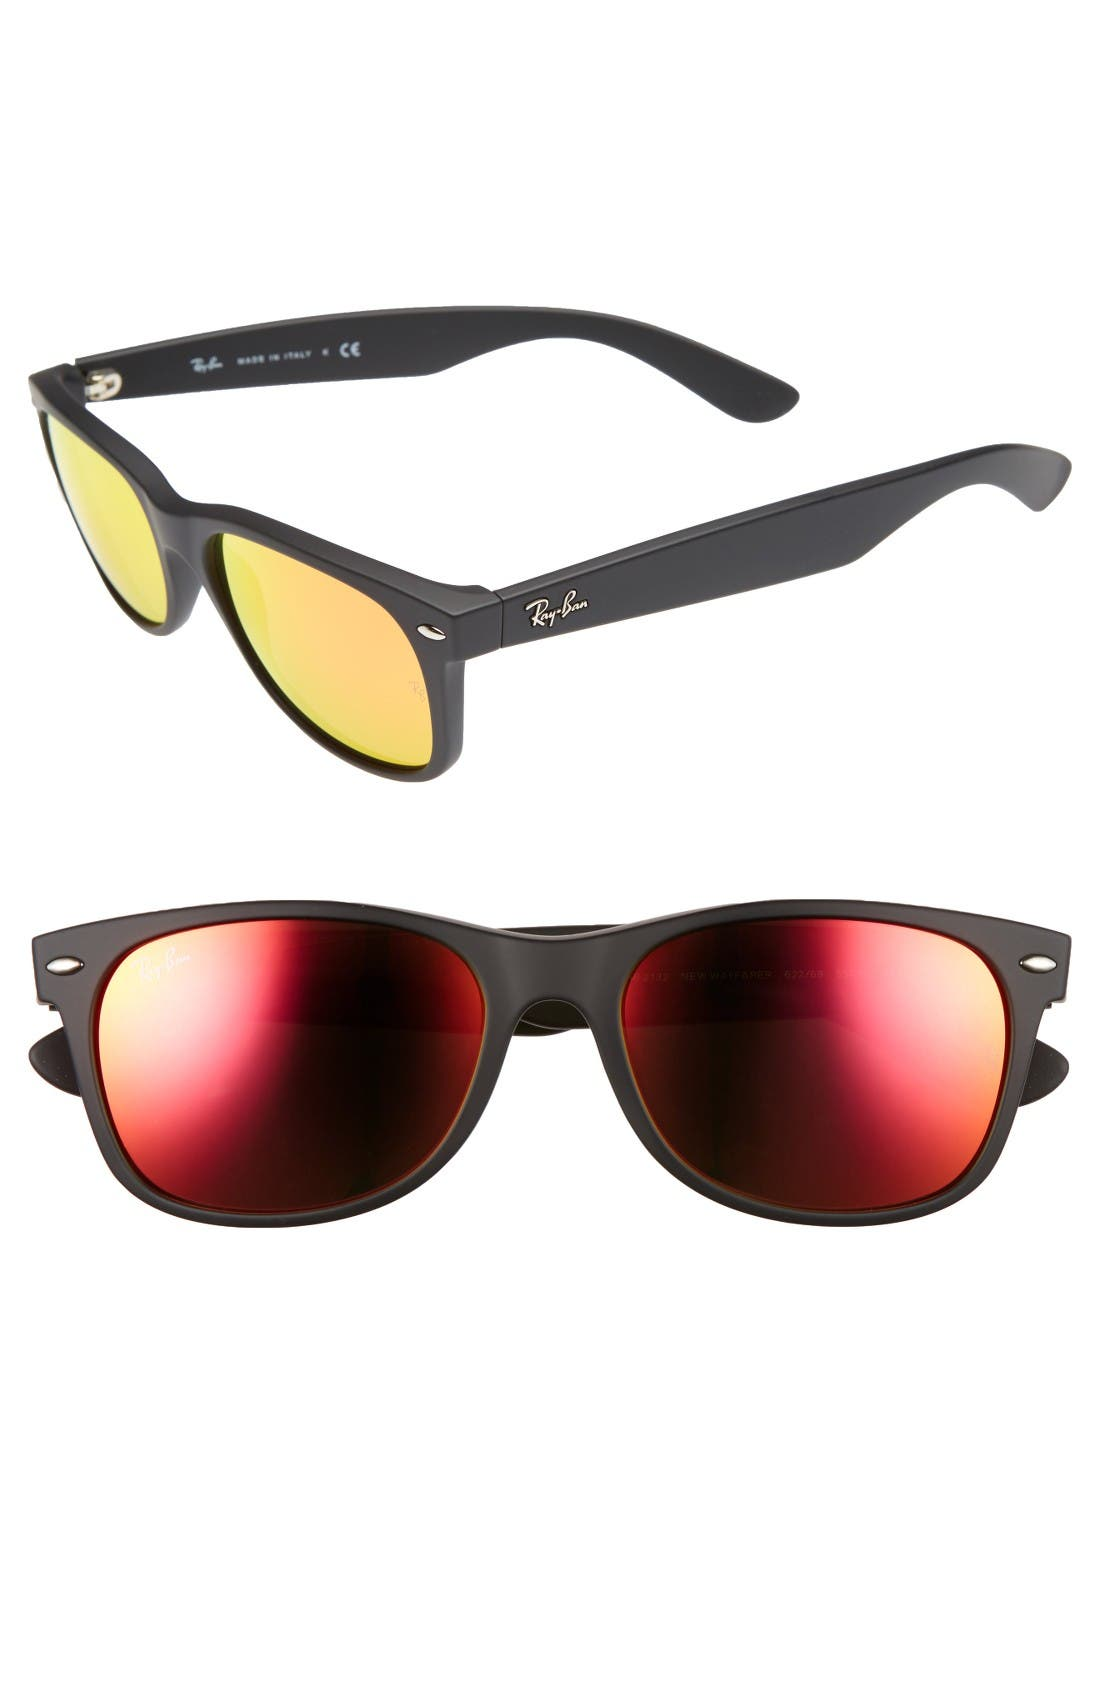 2132 55mm Sunglasses,                         Main,                         color, Black/ Brown Mirror Red